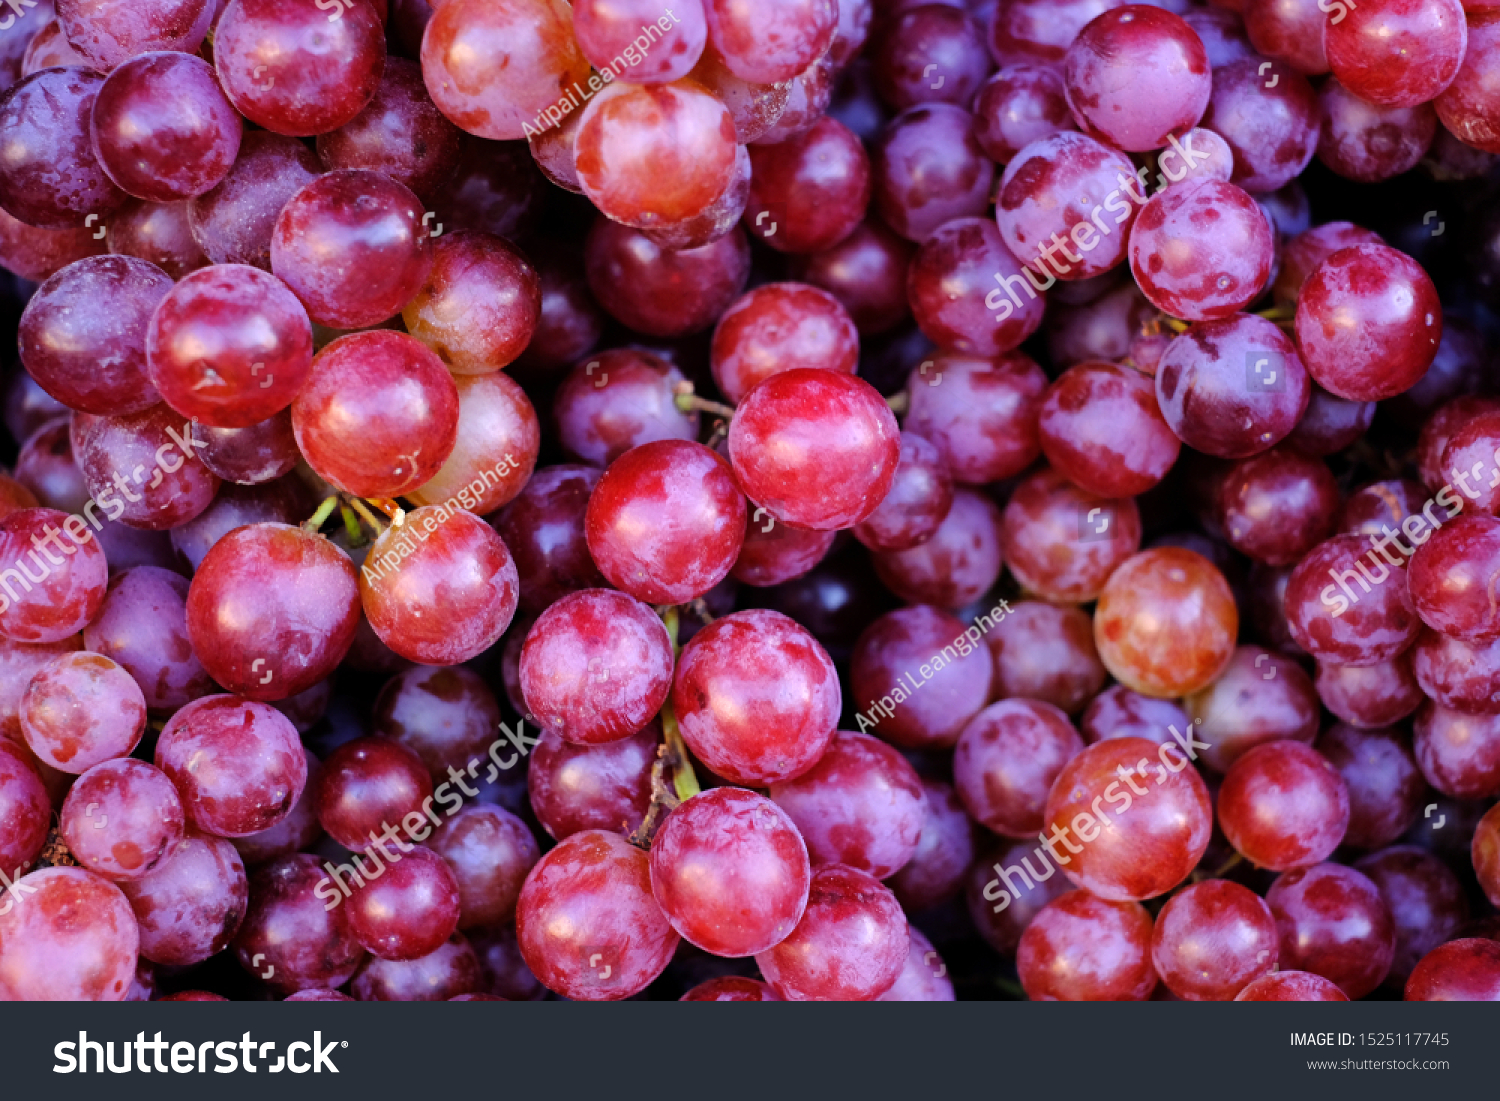 Healthy fruits Red wine grapes background/ dark grapes/ blue grapes/wine grapes,Red wine grapes background/dark grapes,blue grapes,Red Grape in a supermarket local market bunch of grapes ready to eat #1525117745